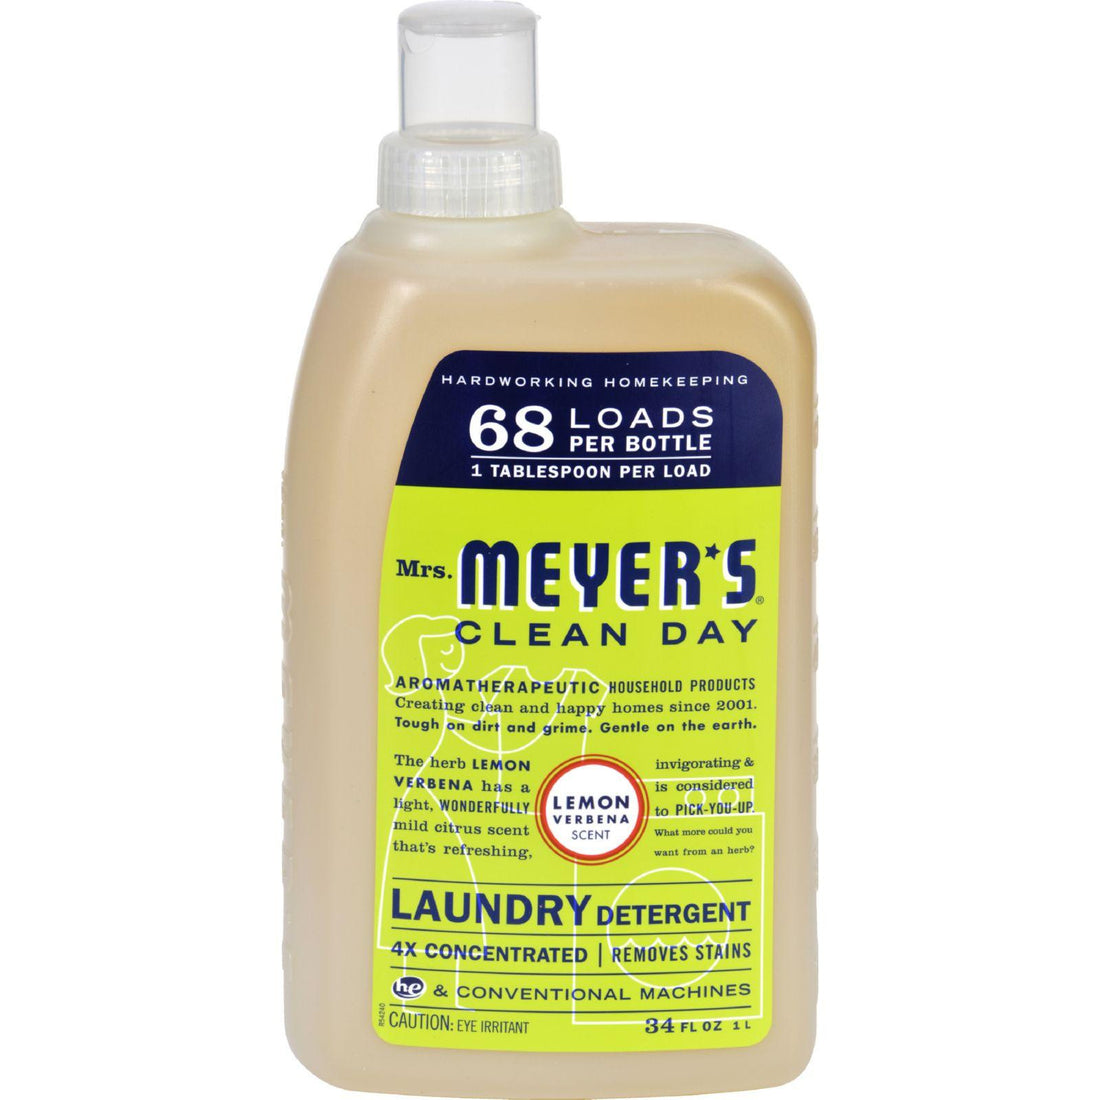 Mother Mantis: Mrs. Meyer's 68 Load 4x Laundry Detergent - Lemon Verbena - 34 Fl Oz - Case Of 6 Mrs. Meyer's